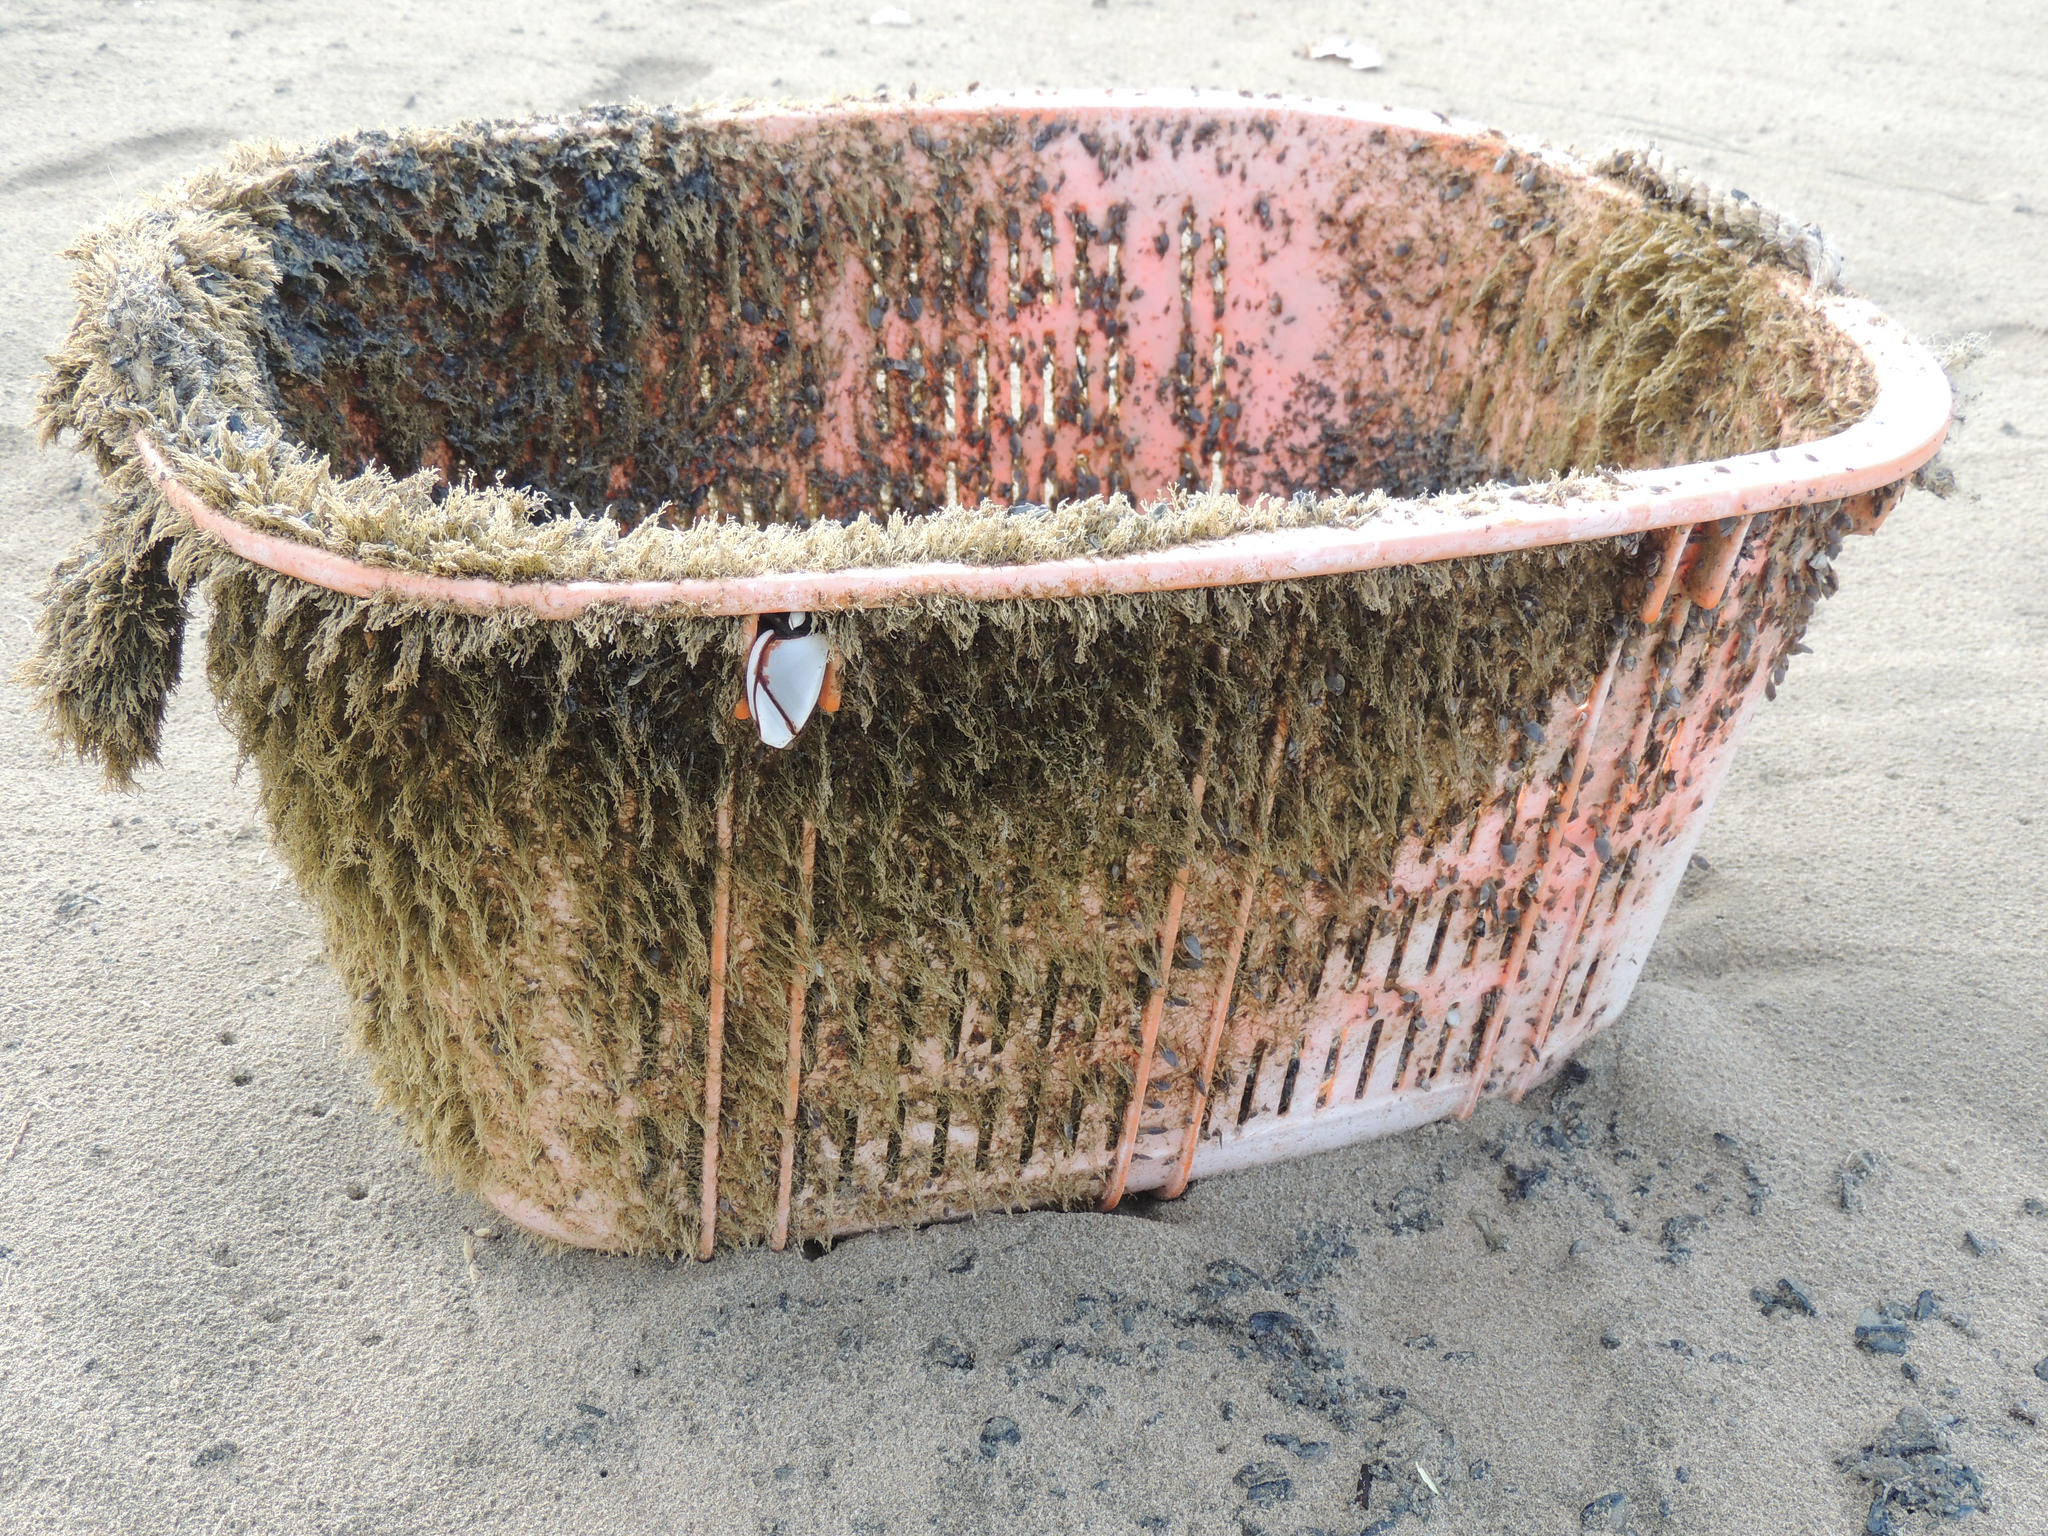 Plastic tub from the 2011 Japanese earthquake and tsunami that were found by Oregon State University researchers along the coast of Oregon. (OSU)